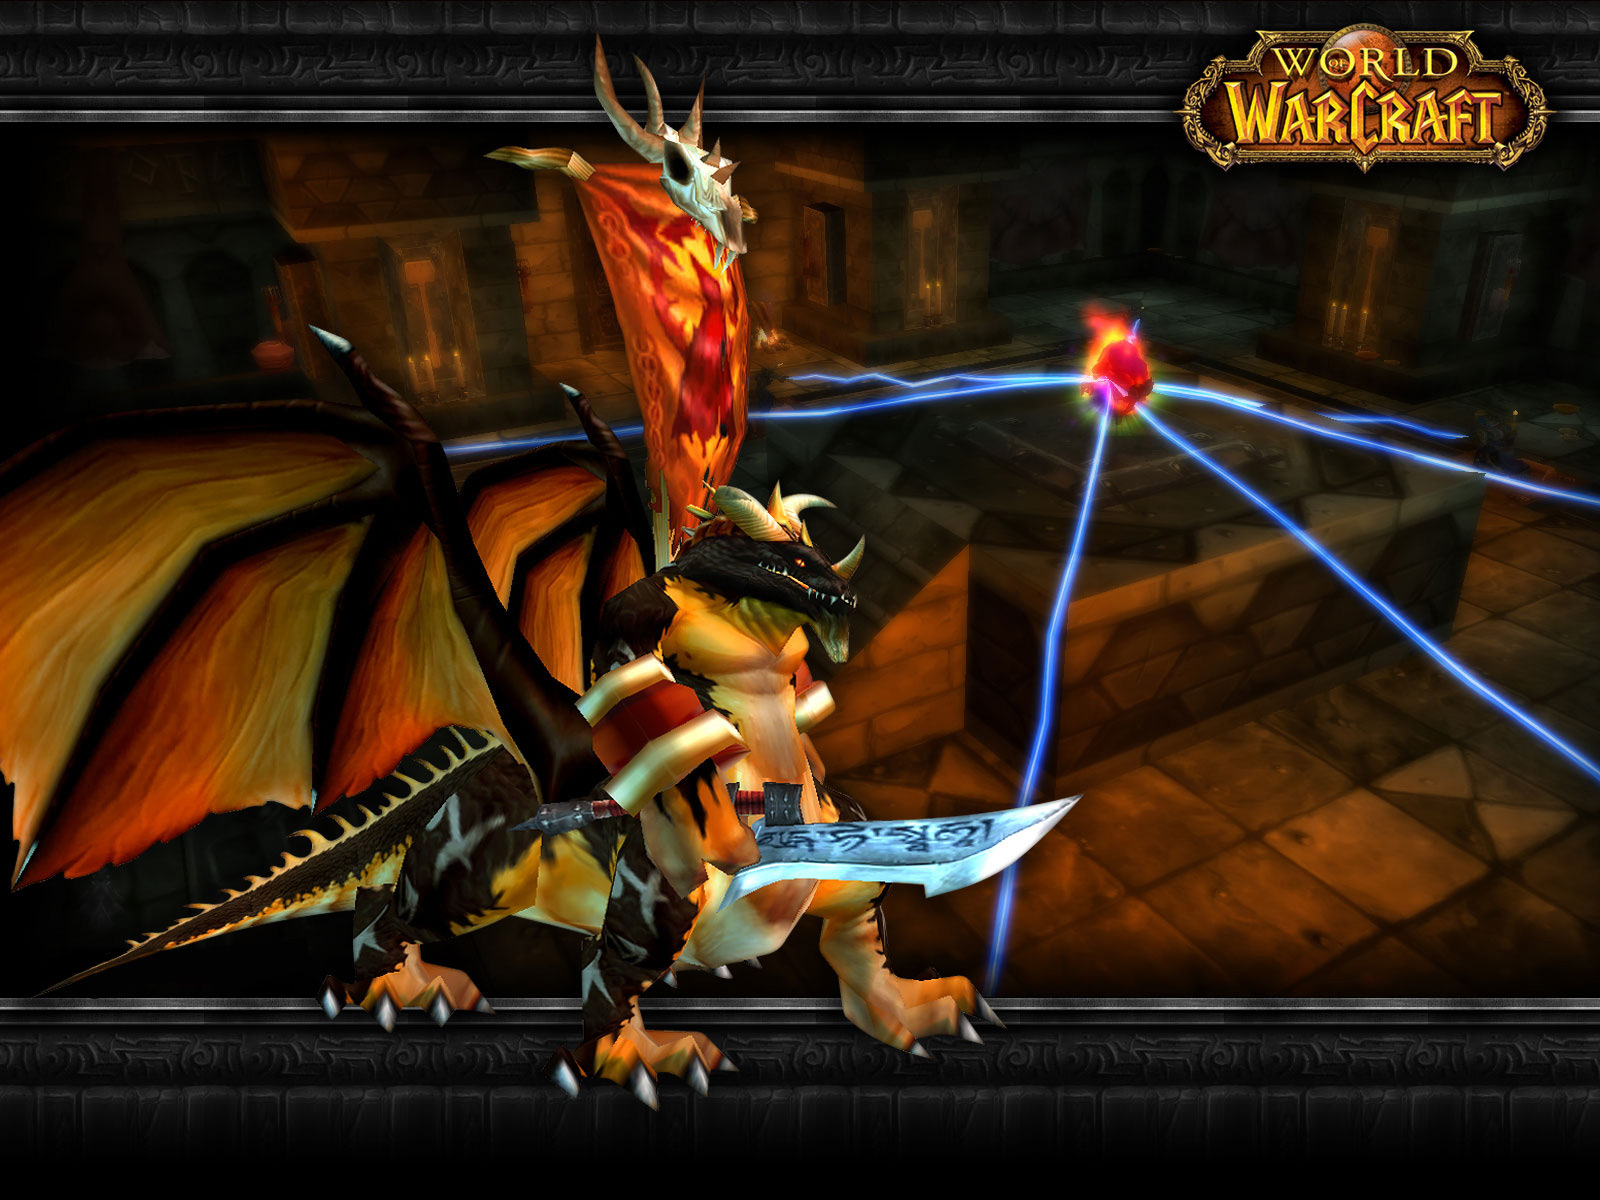 Wallpaper Word of Warcraft WoW dragon kin